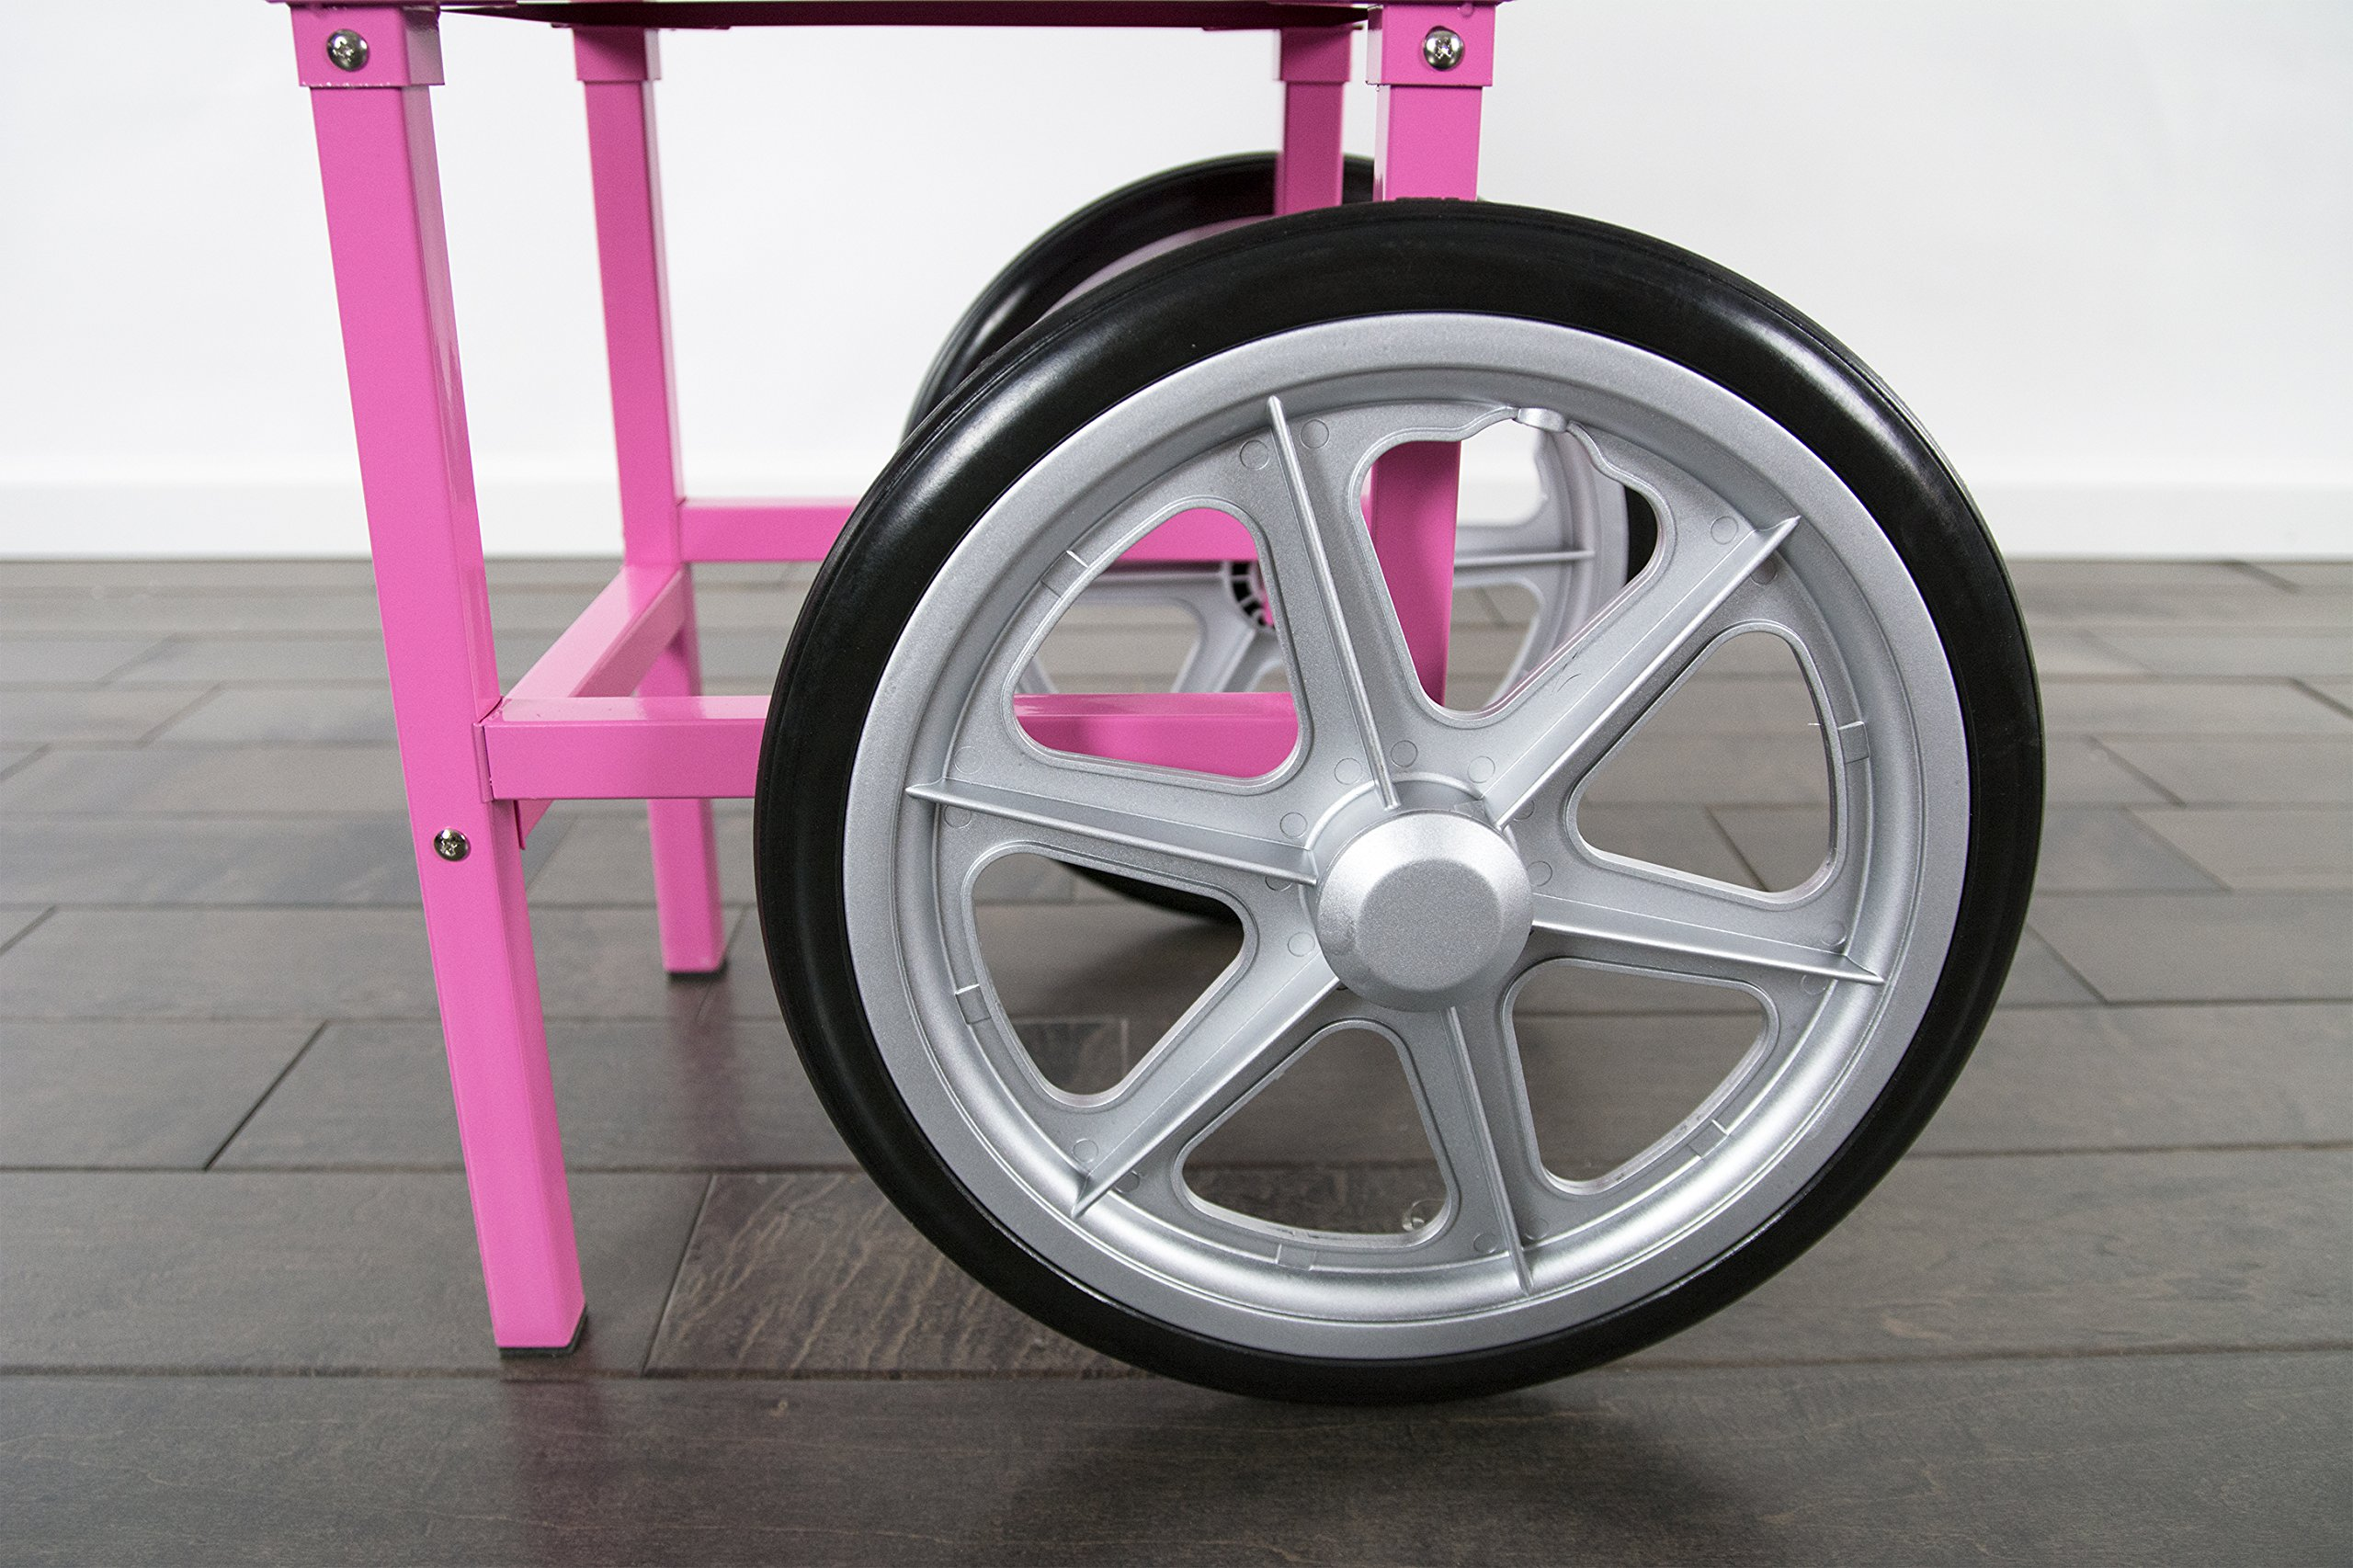 Electric Commercial Cotton Candy Machine / Candy Floss Maker Pink Cart Stand VIVO (CANDY-V002) by VIVO (Image #5)